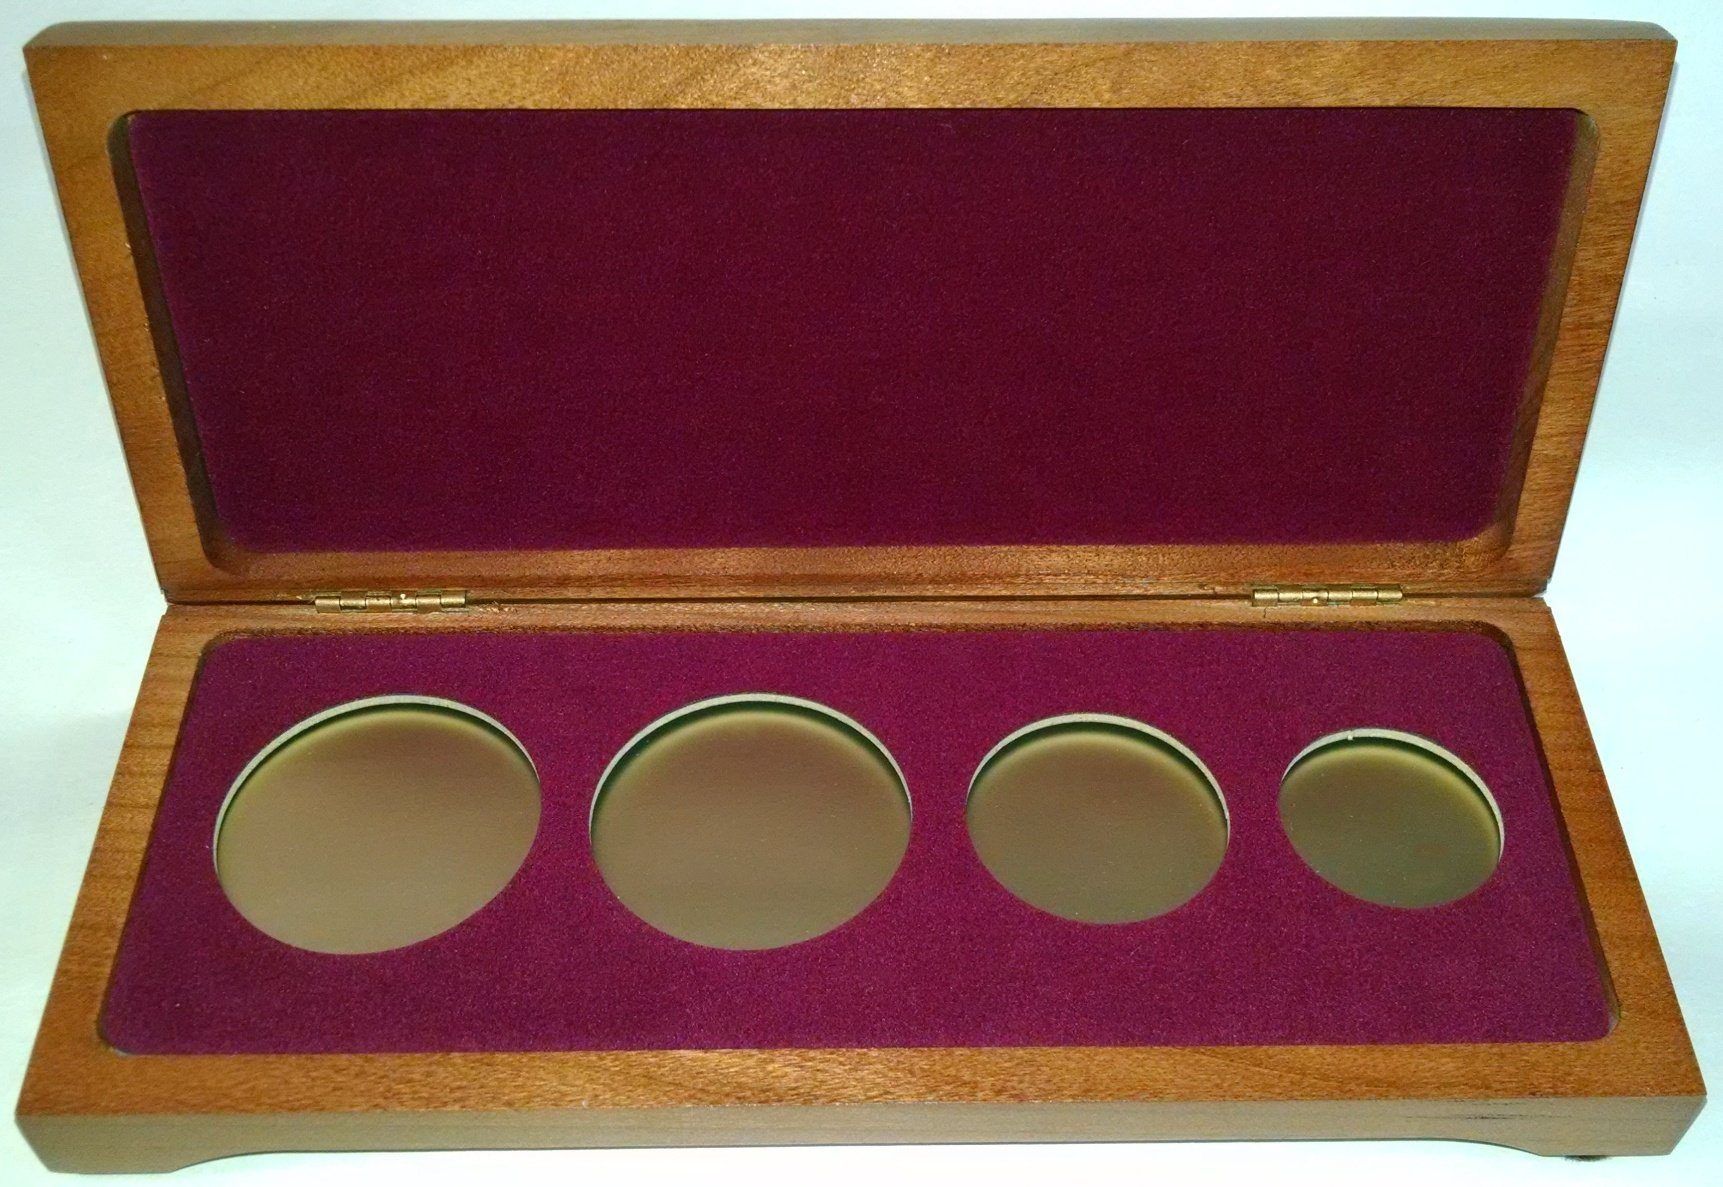 2 US Mint Presentation Gift Display Case For 1//4 oz Gold American Eagle Coin Box